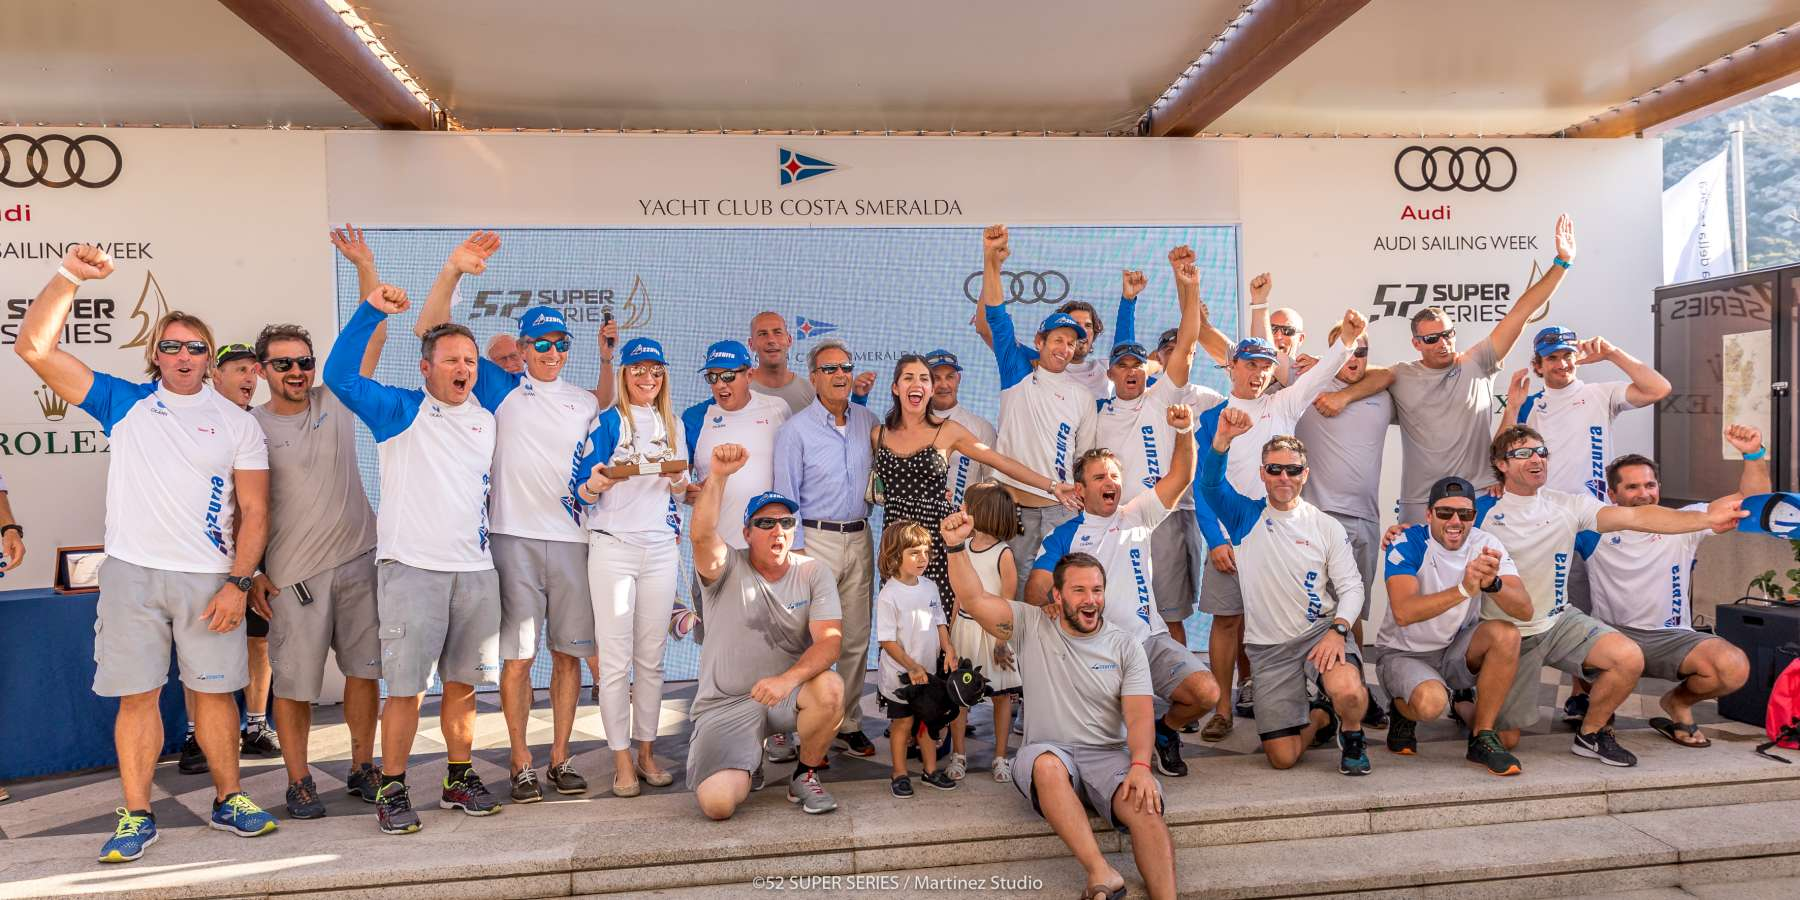 Audi 52 Super Series Sailing Week  - Porto Cervo 2019 - 3